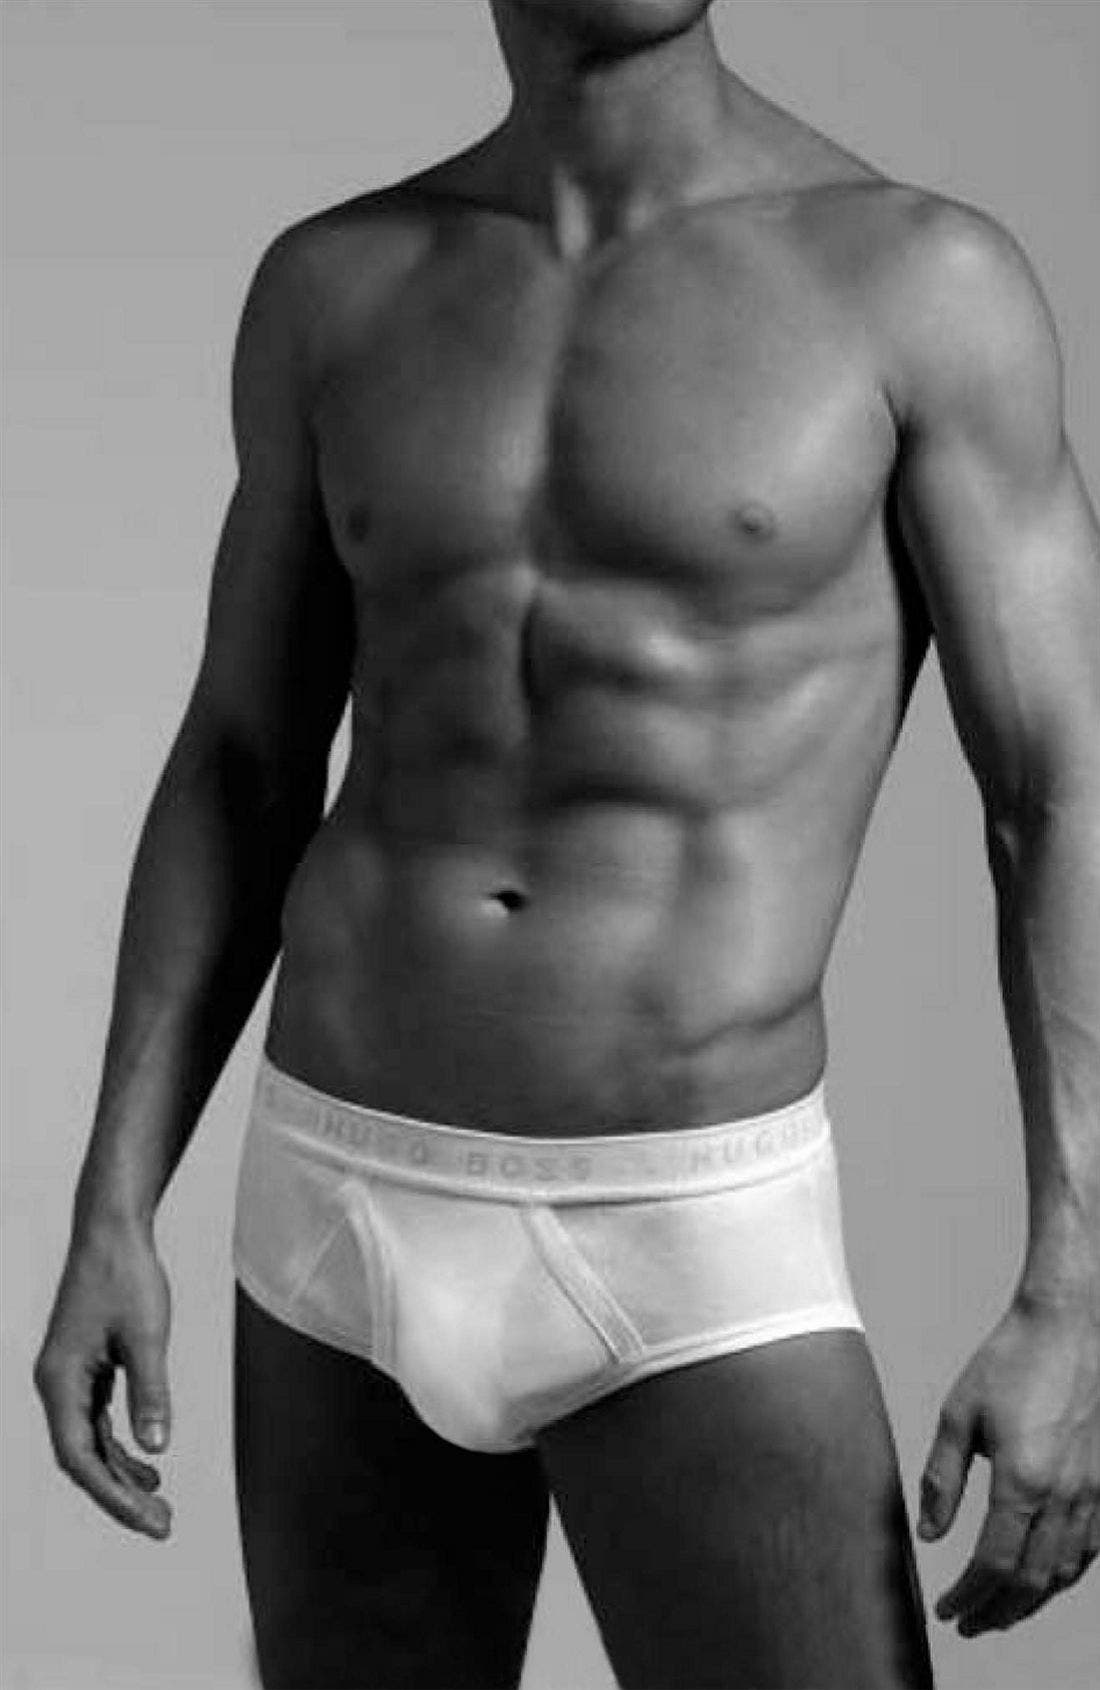 Alternate Image 1 Selected - BOSS Black Briefs (3-Pack)